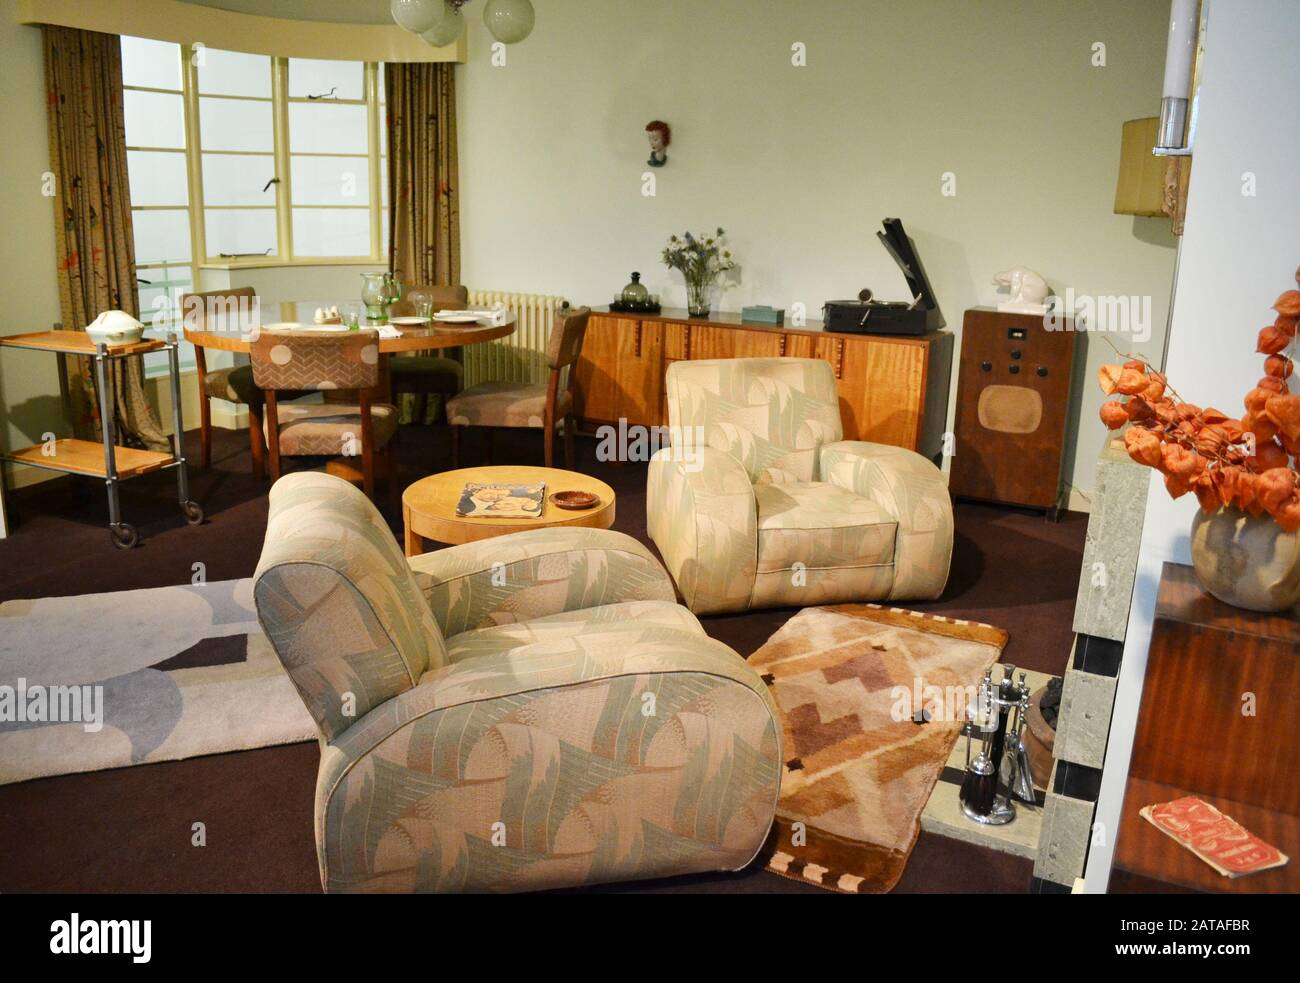 1930s Period Living Room At The Geffrye Museum London Uk In 2015 In 2020 It Rebranded As The Museum Of The Home Stock Photo Alamy